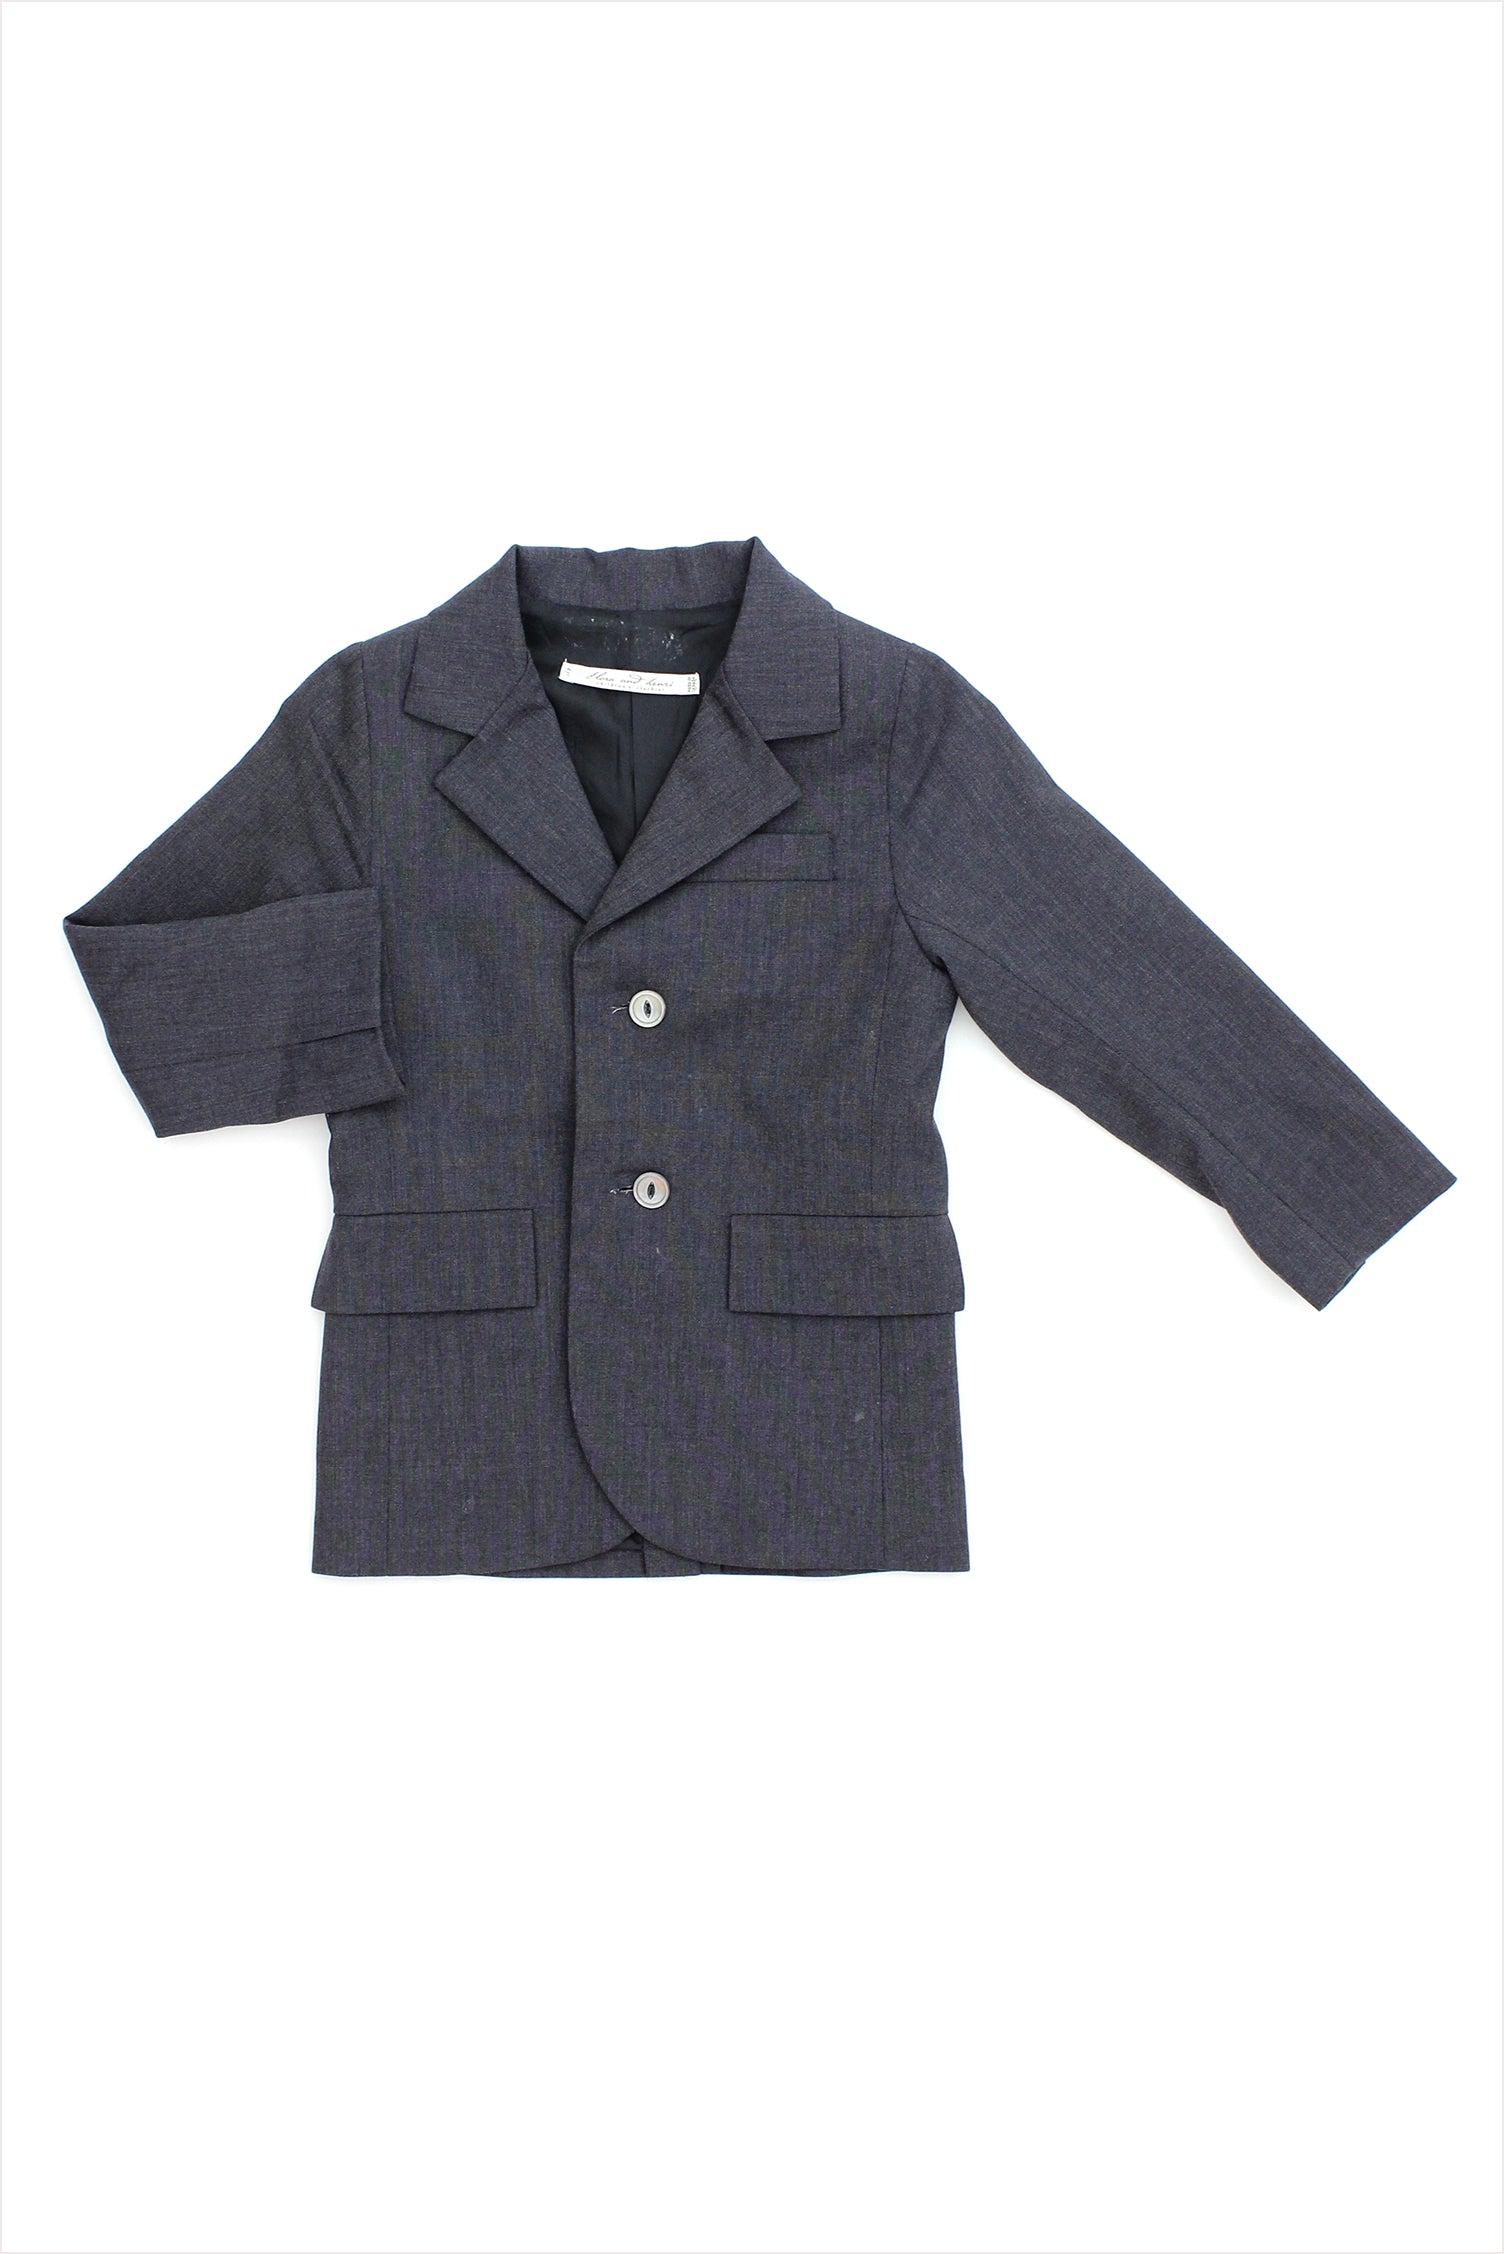 Sample Sale Dress Jacket 6year Charcoal